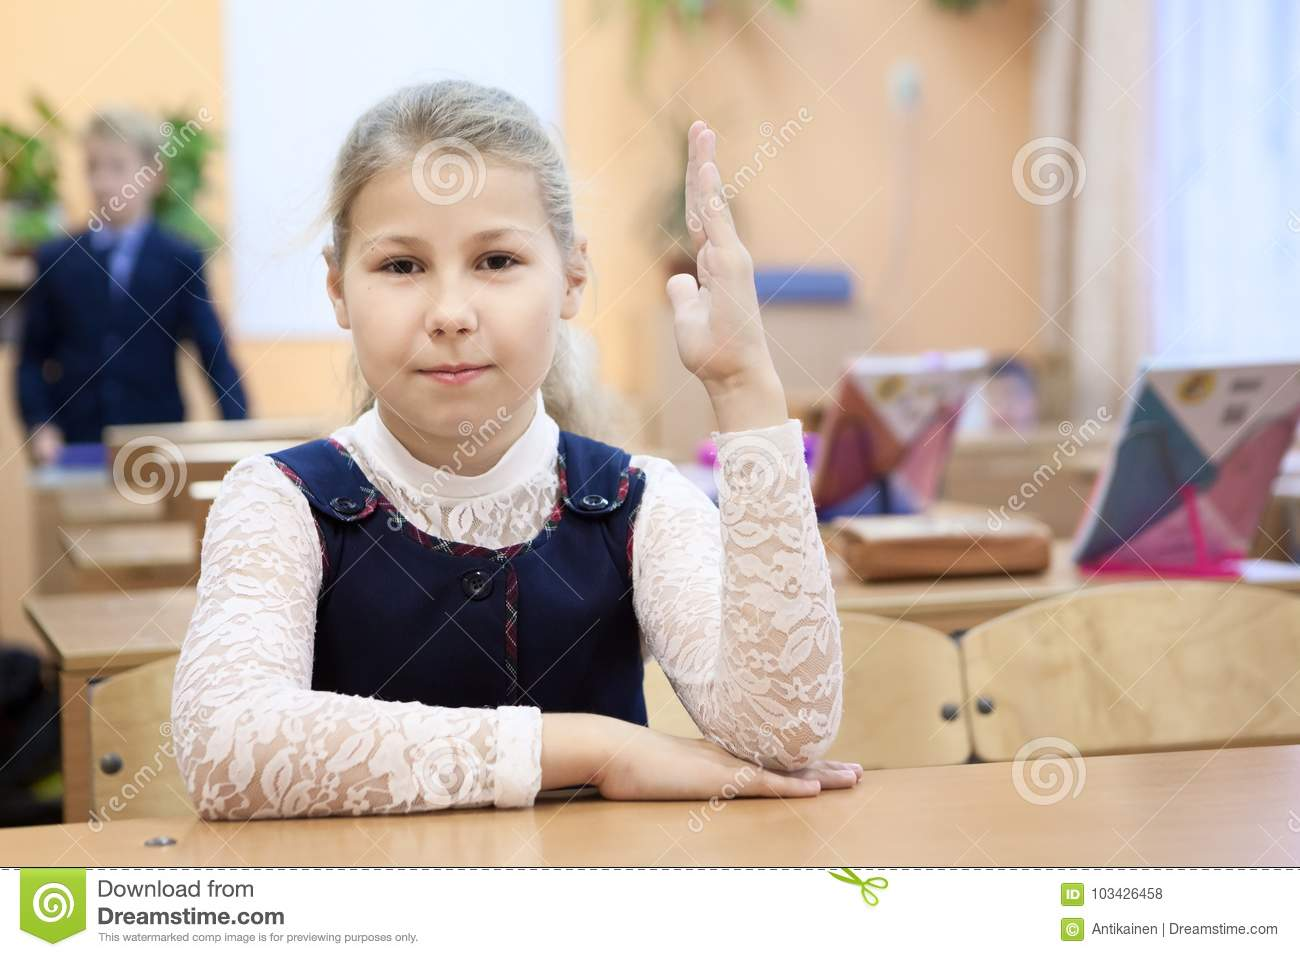 russian schoolgirl Russian schoolgirl in uniform sitting at the desk in class room and rising  hand up. Russia